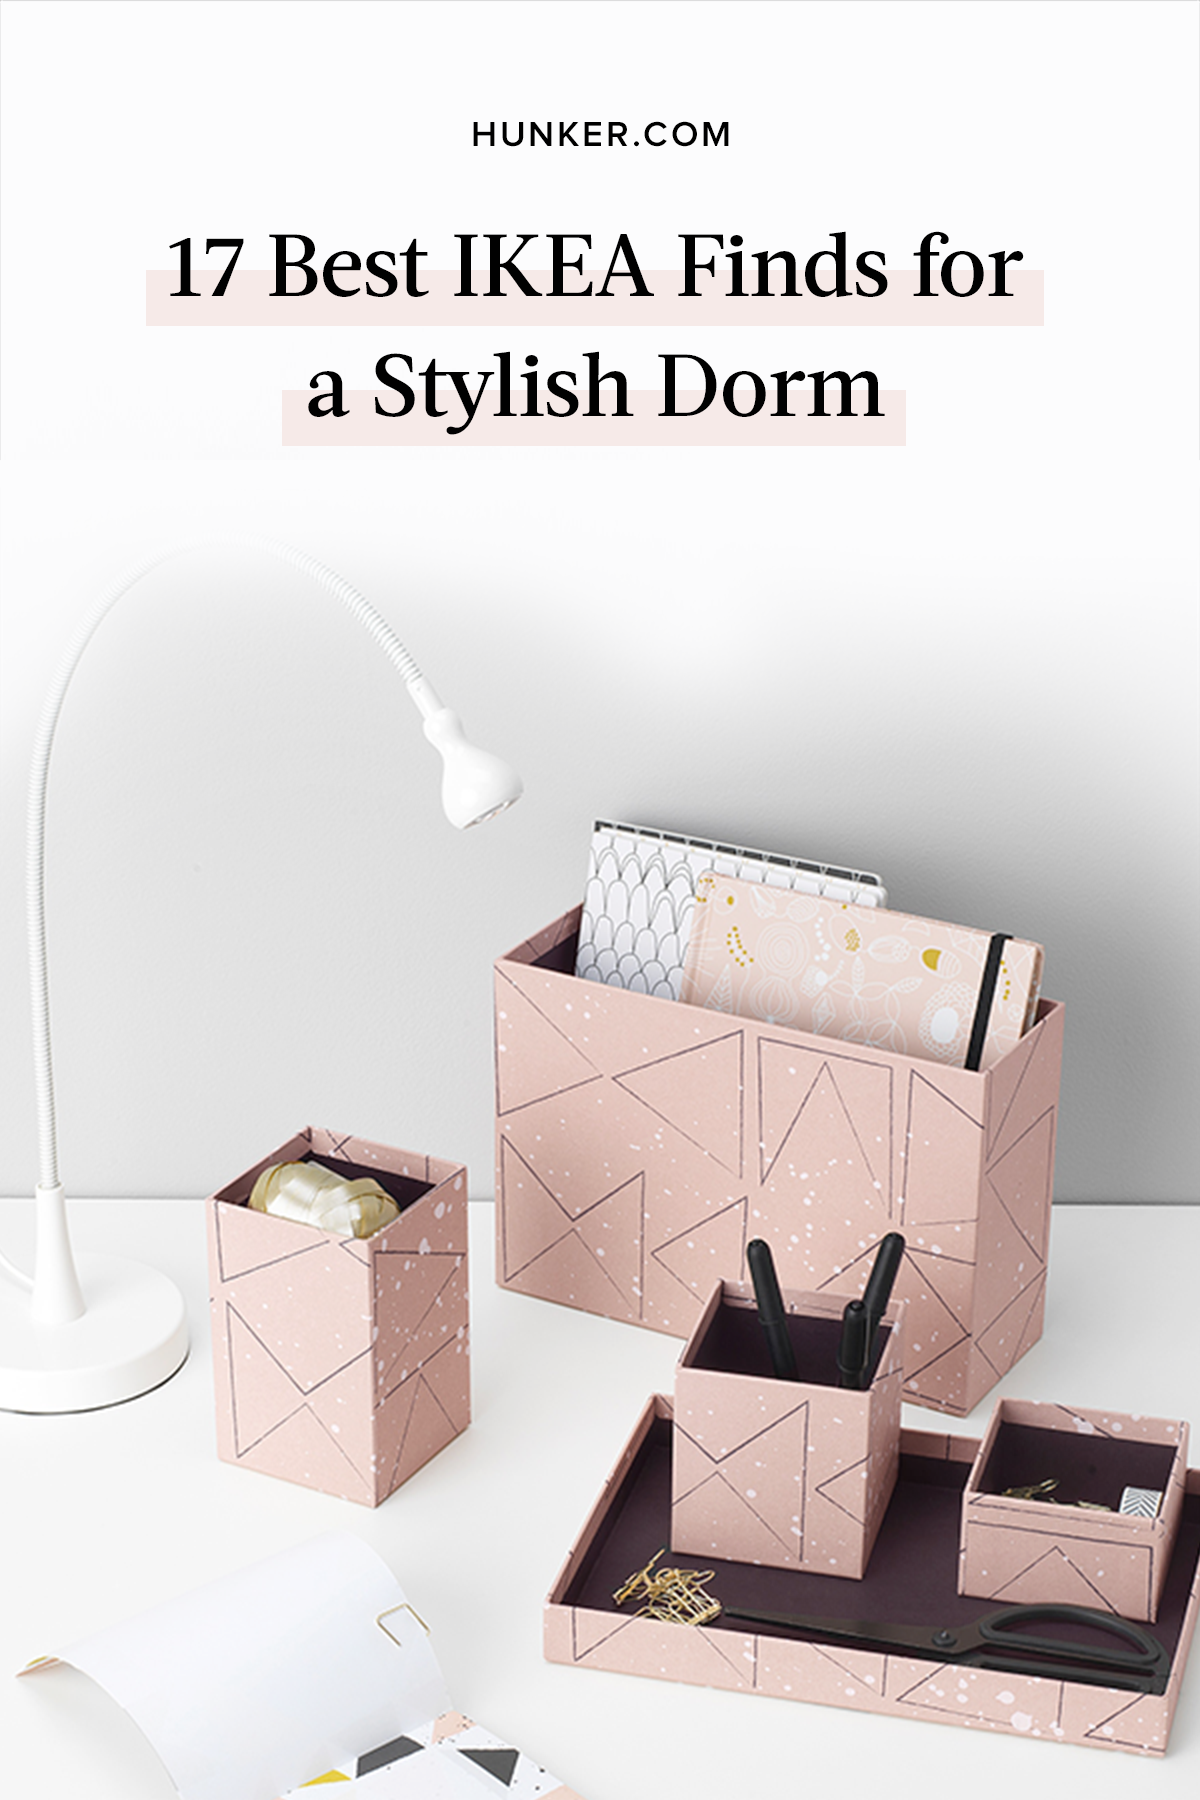 Ikea Dorm Room Ideas: 17 Best IKEA Finds For A Stylish Dorm In 2019